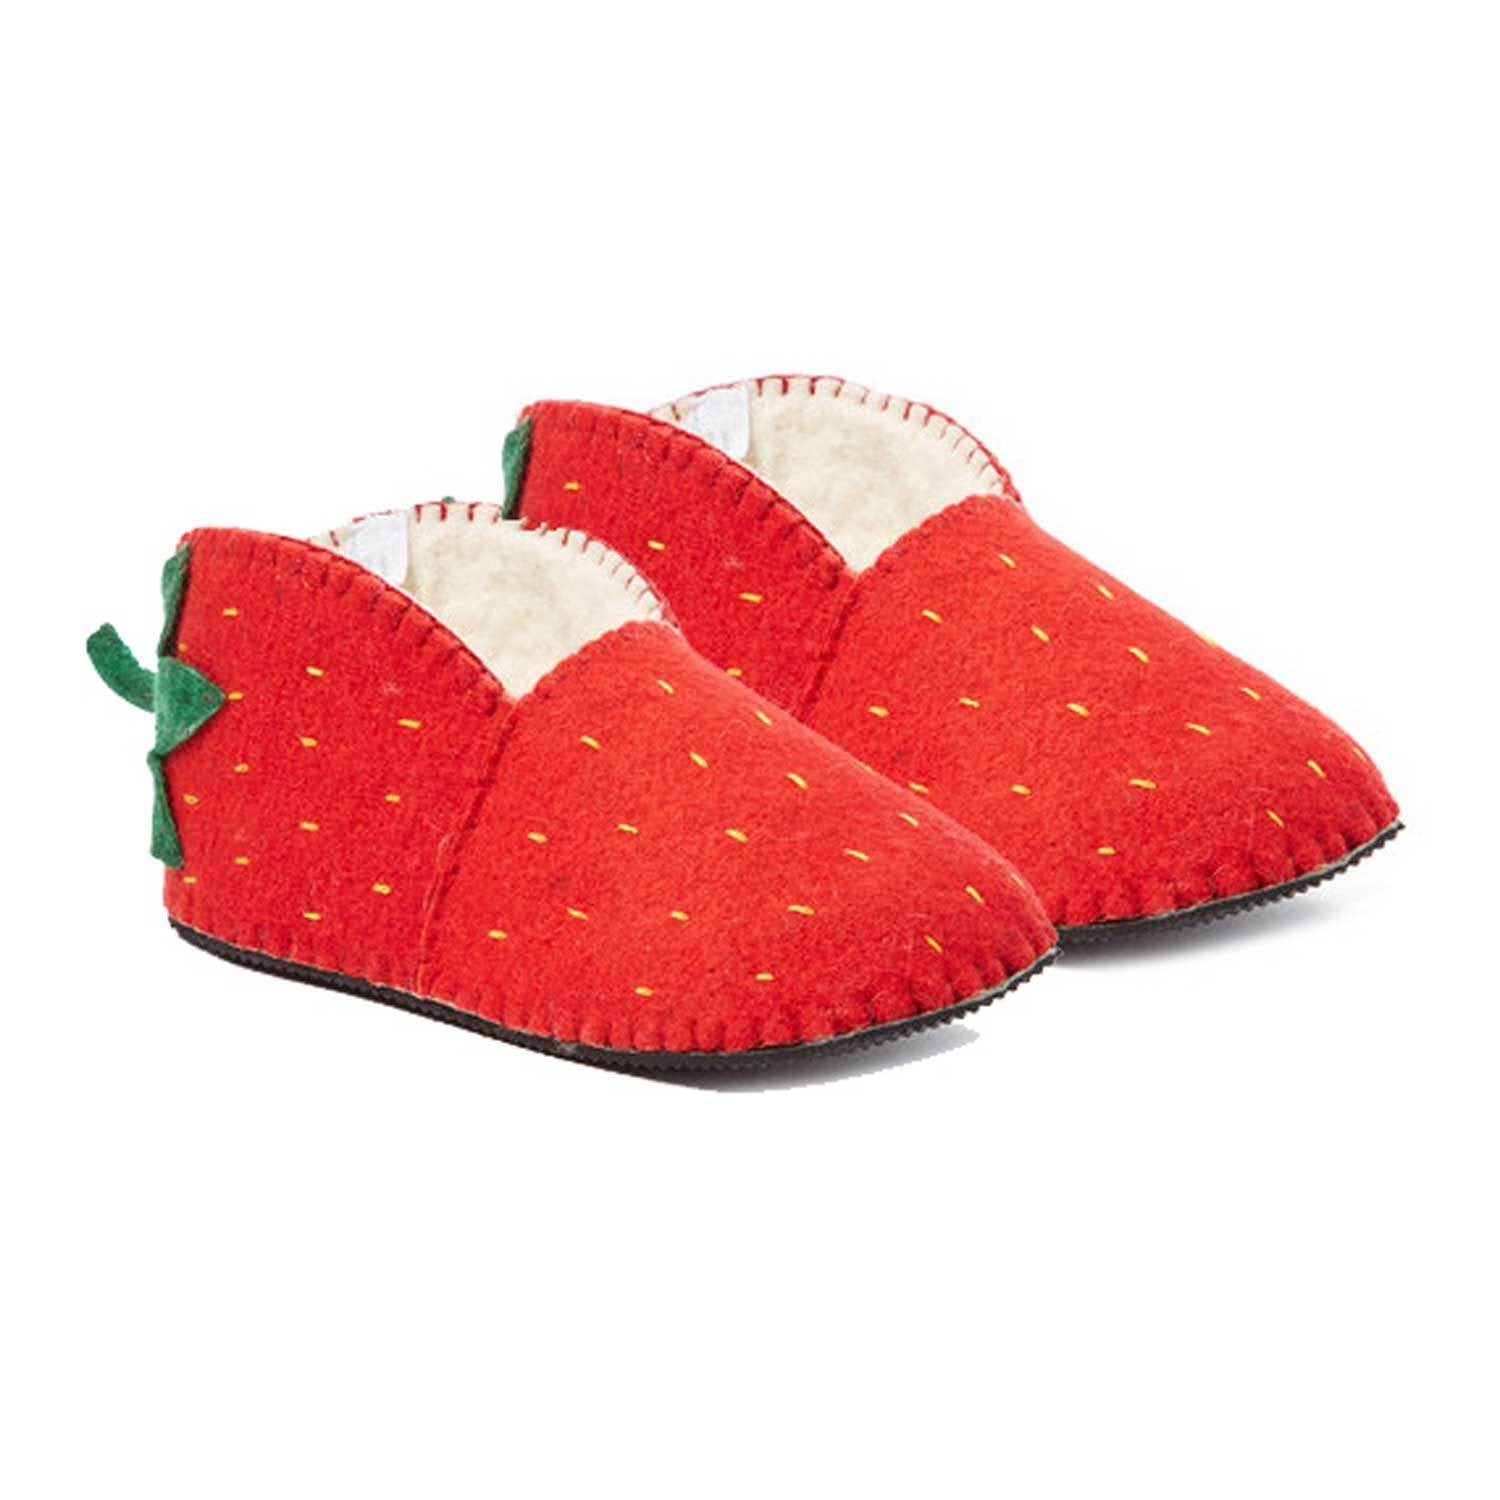 Strawberry Slippers Adult Medium